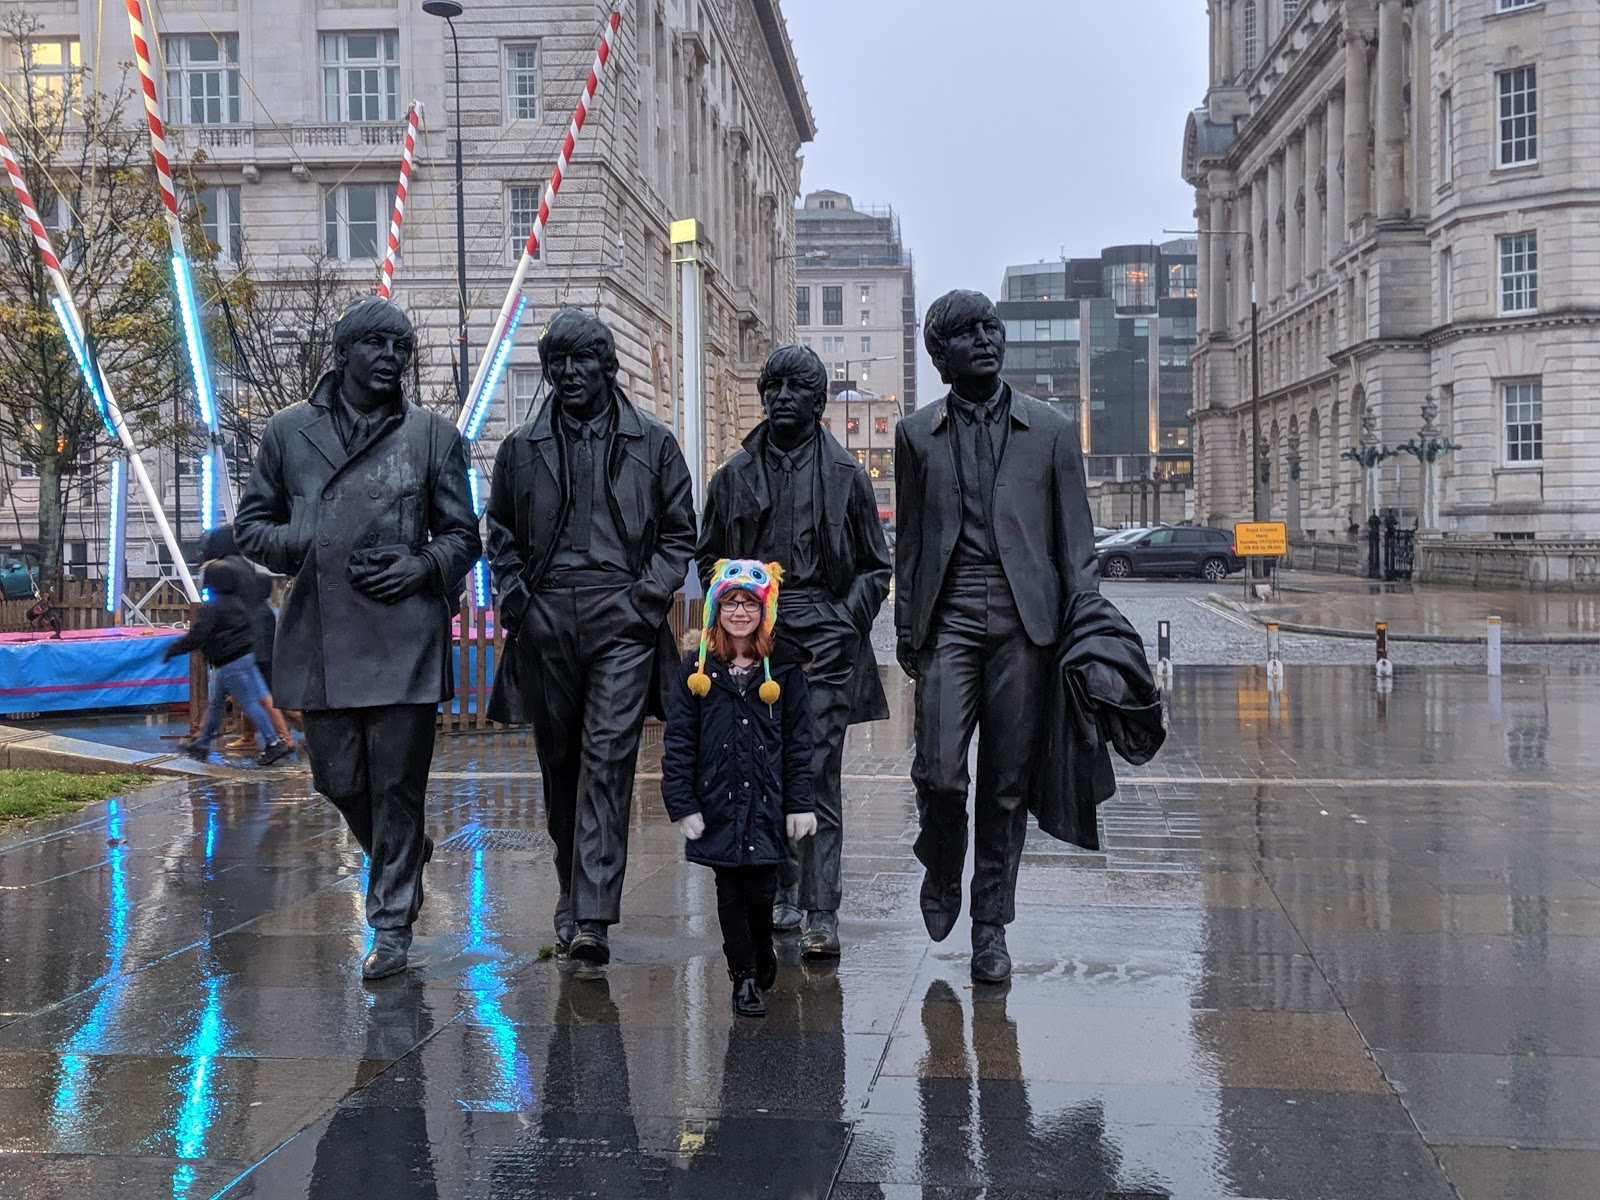 A Guide to Visiting Liverpool Christmas Markets & Lights  - Liverpool Ice Festival Beatles Monument